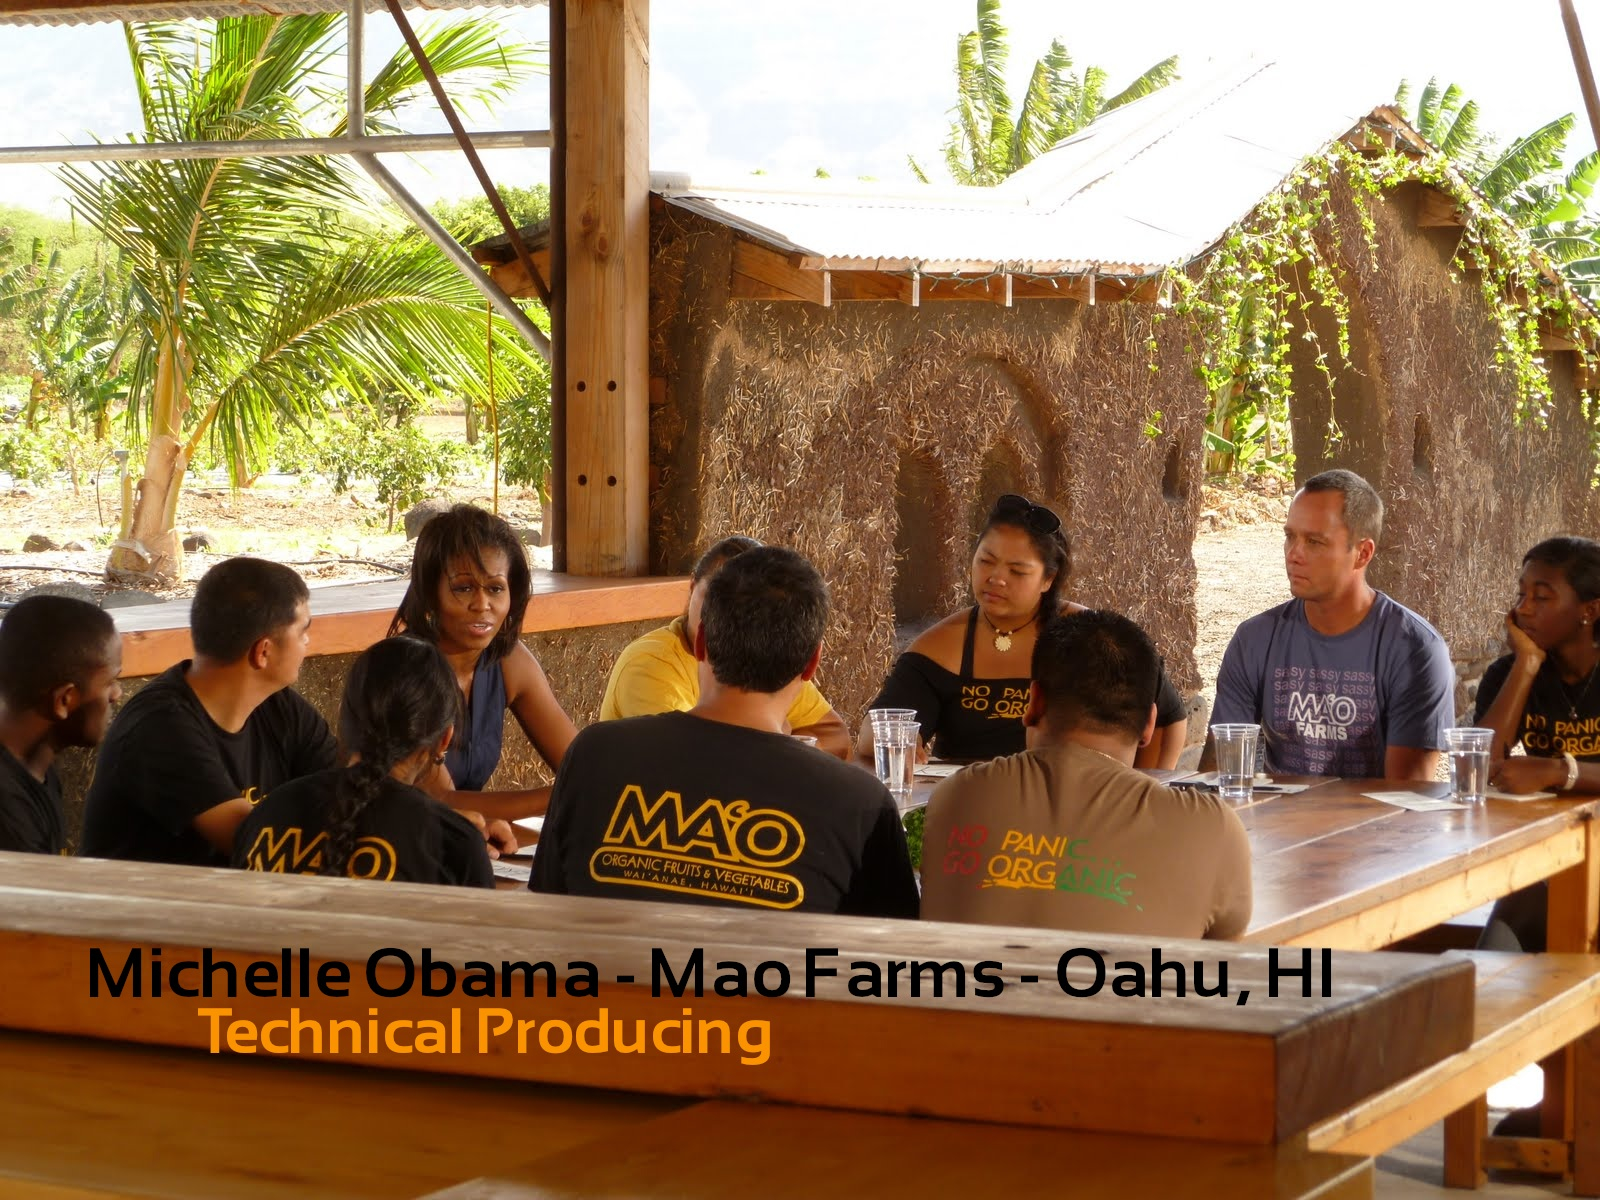 Michelle Obama - Mao Farms, HI